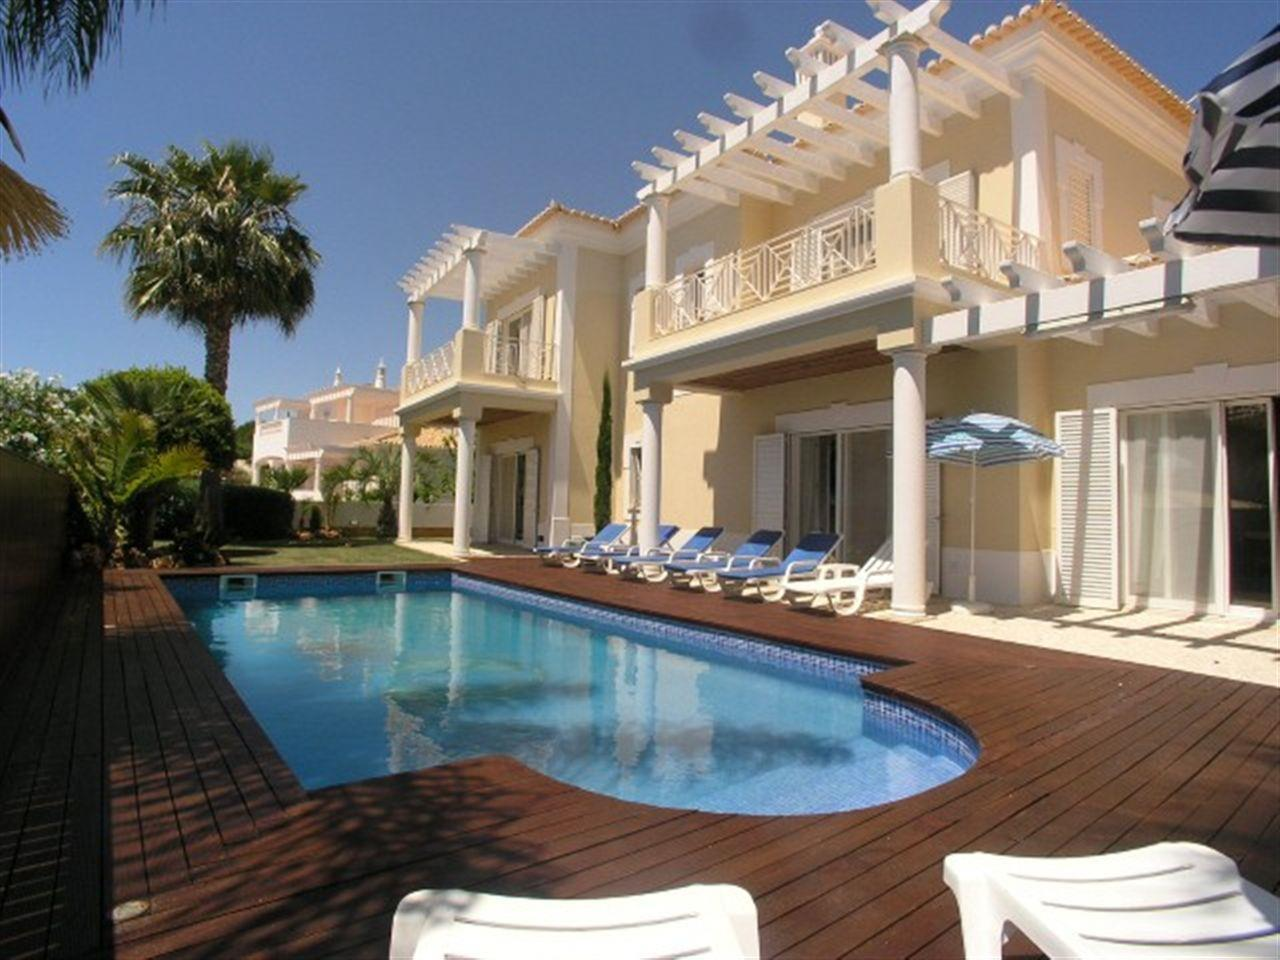 단독 가정 주택 용 매매 에 Detached house, 4 bedrooms, for Sale Albufeira, Algarve 포르투갈